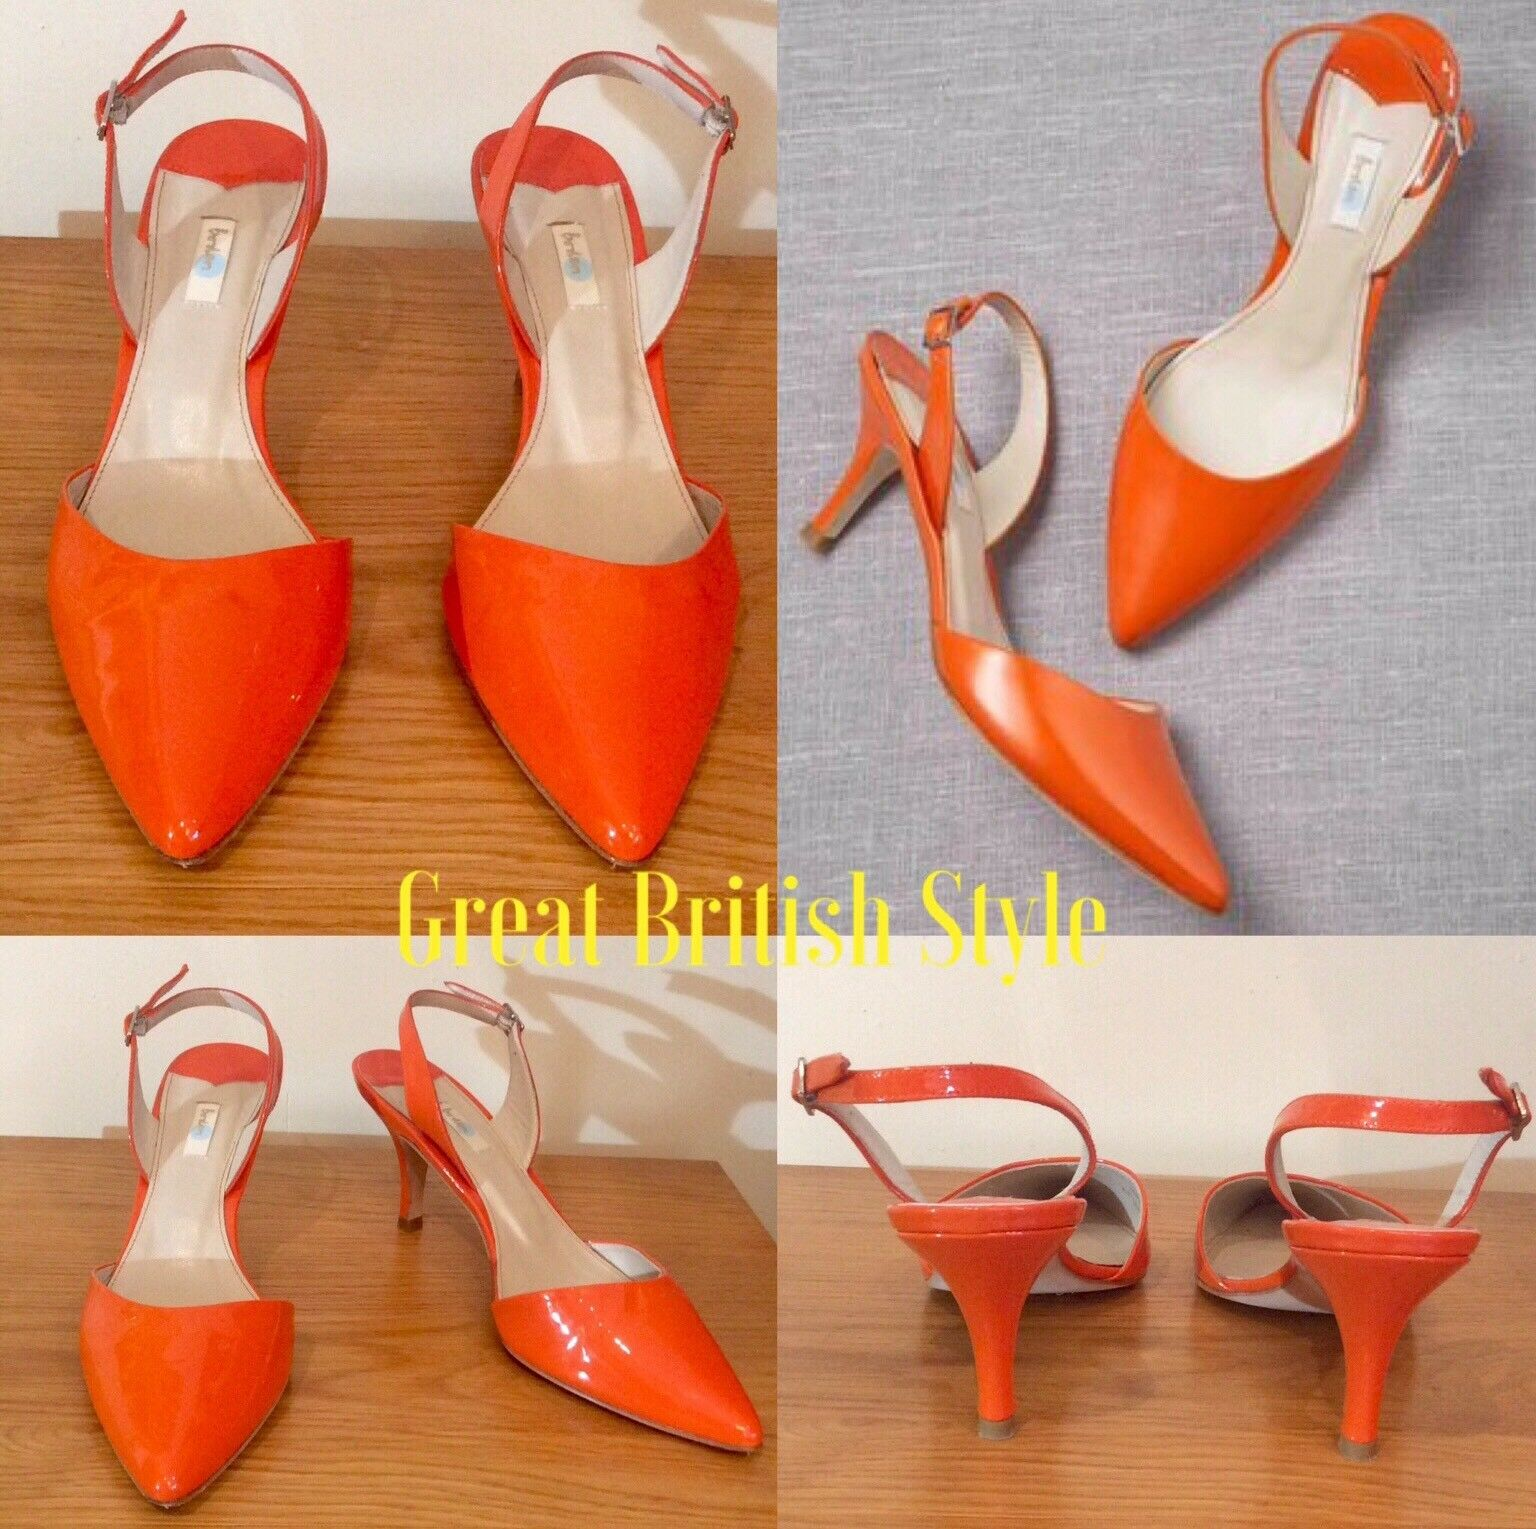 BODEN schuhe Orange PATENT LEATHER SLINGBACKS Größe 40 UK 7 7 7 POINTED TOE LOW HEEL 354814